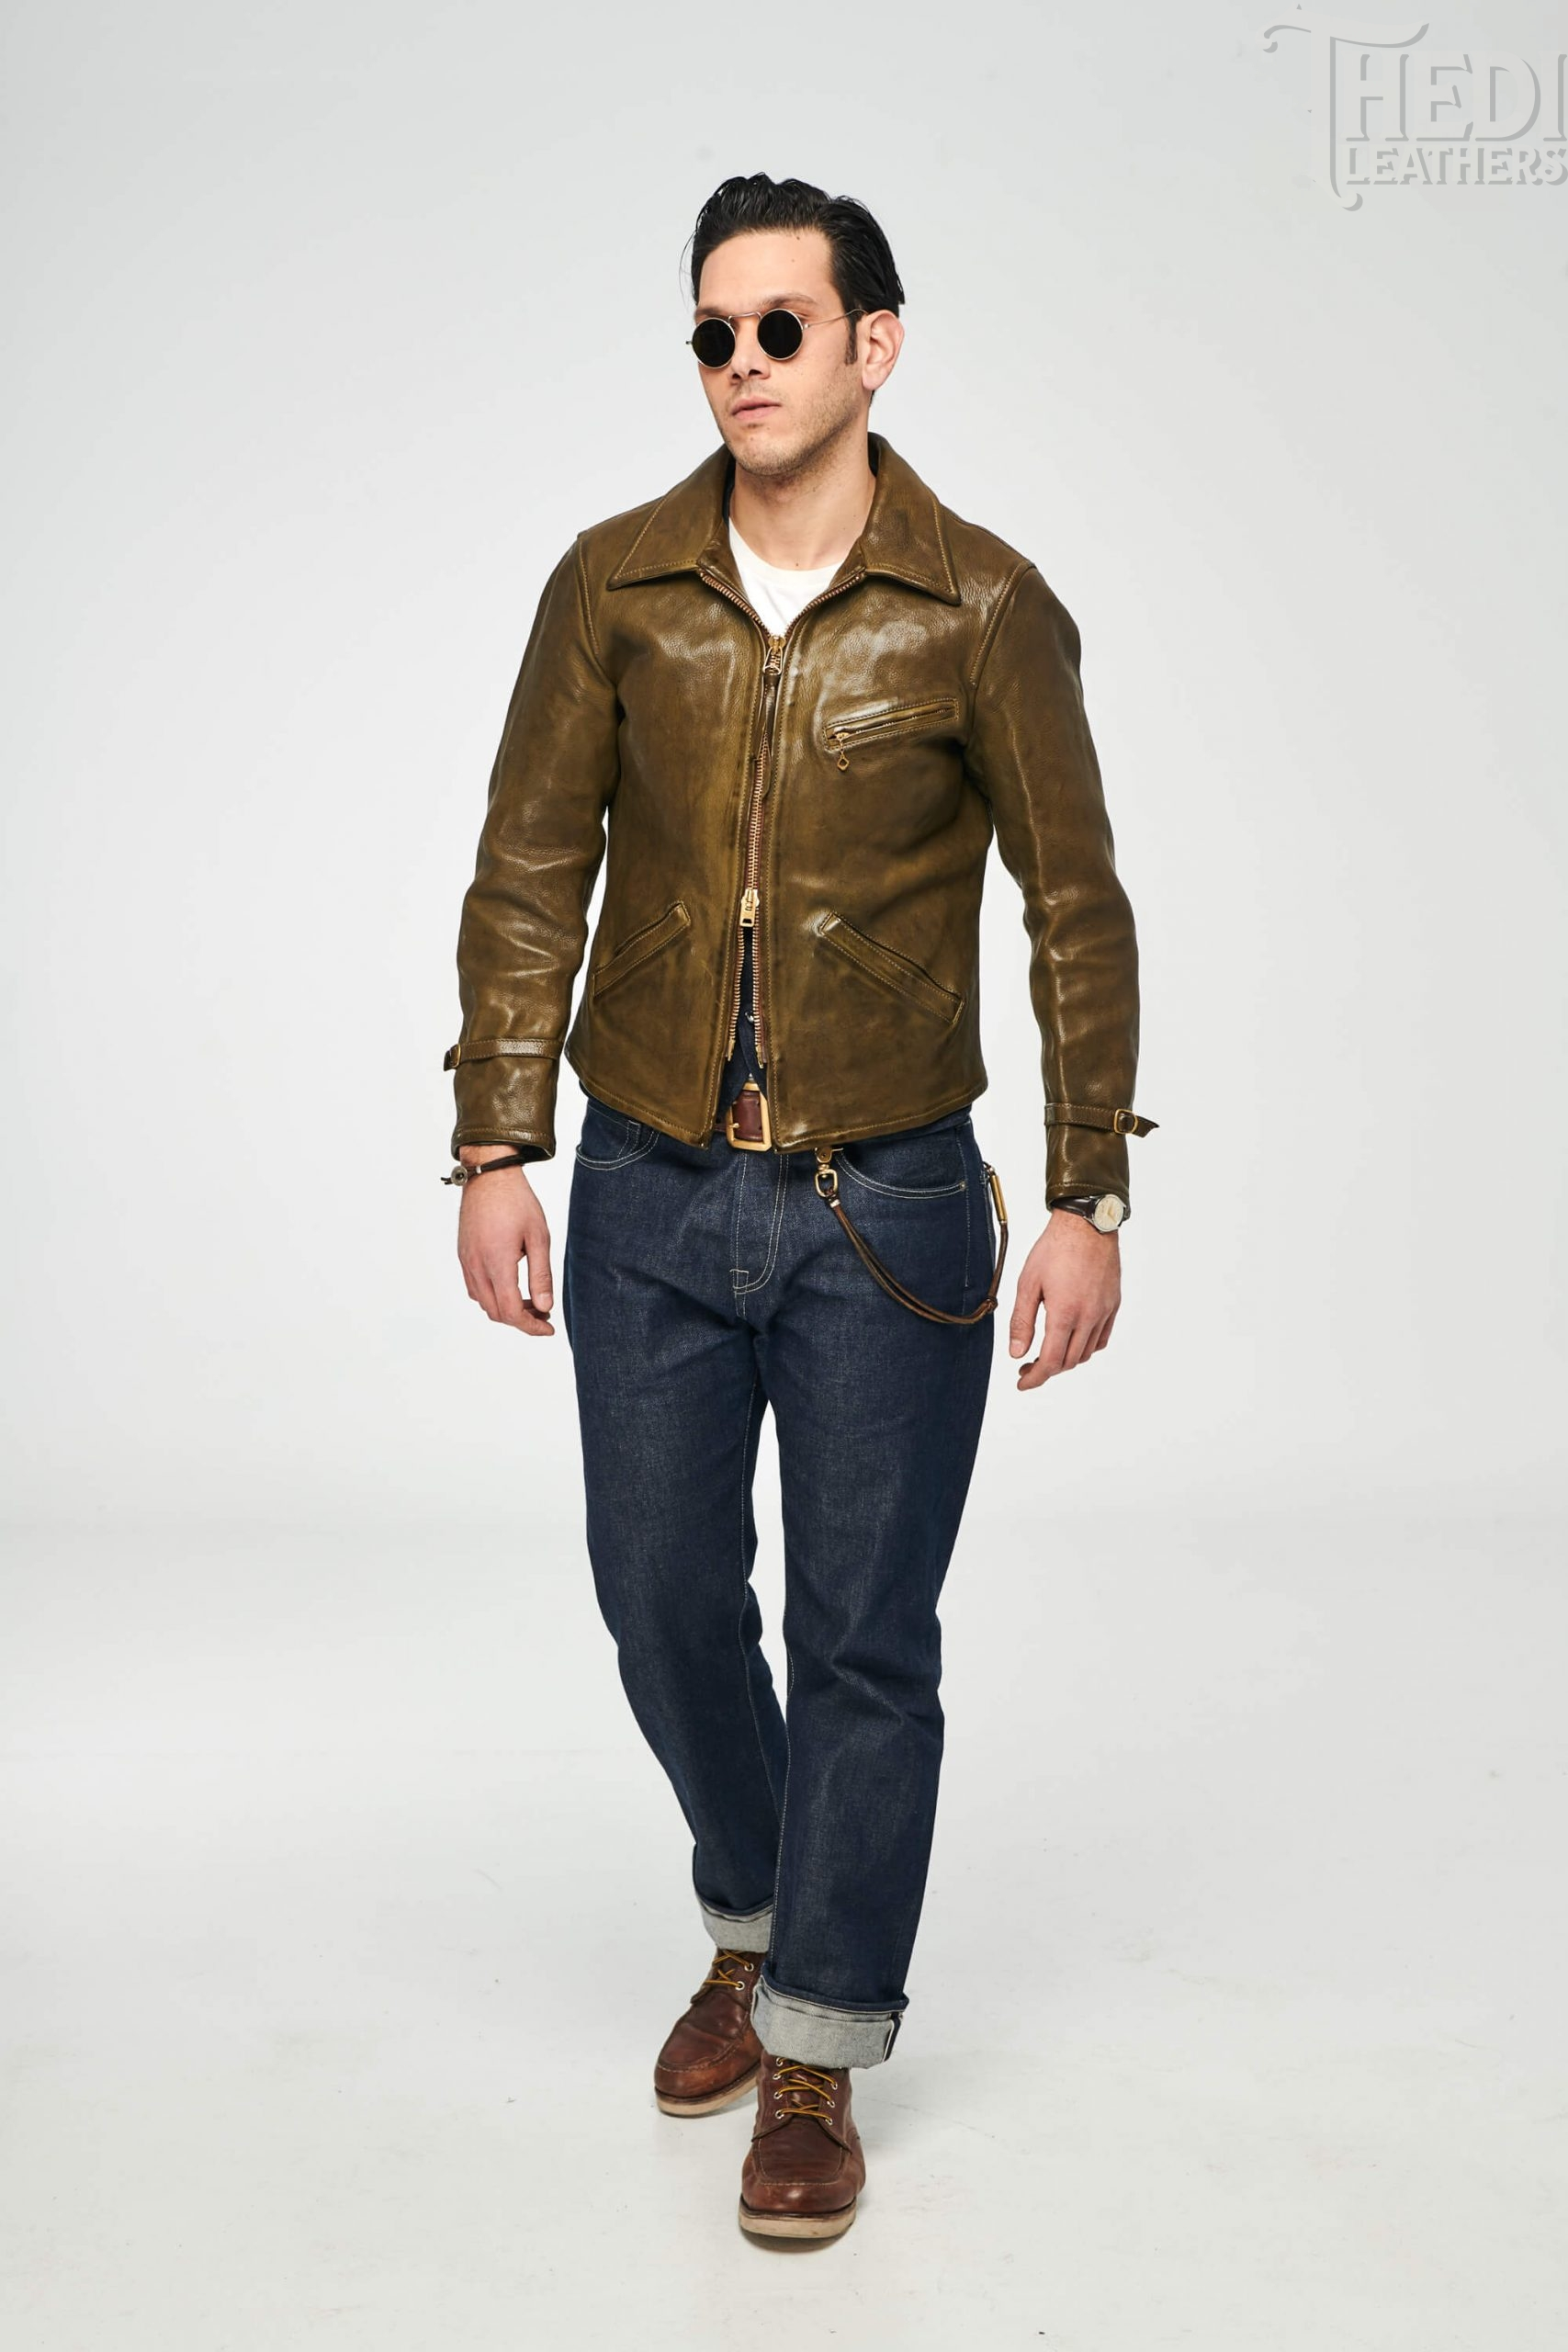 https://thedi-leathers.com/wp-content/uploads/2019/10/MTC-D1279720-scaled.jpg